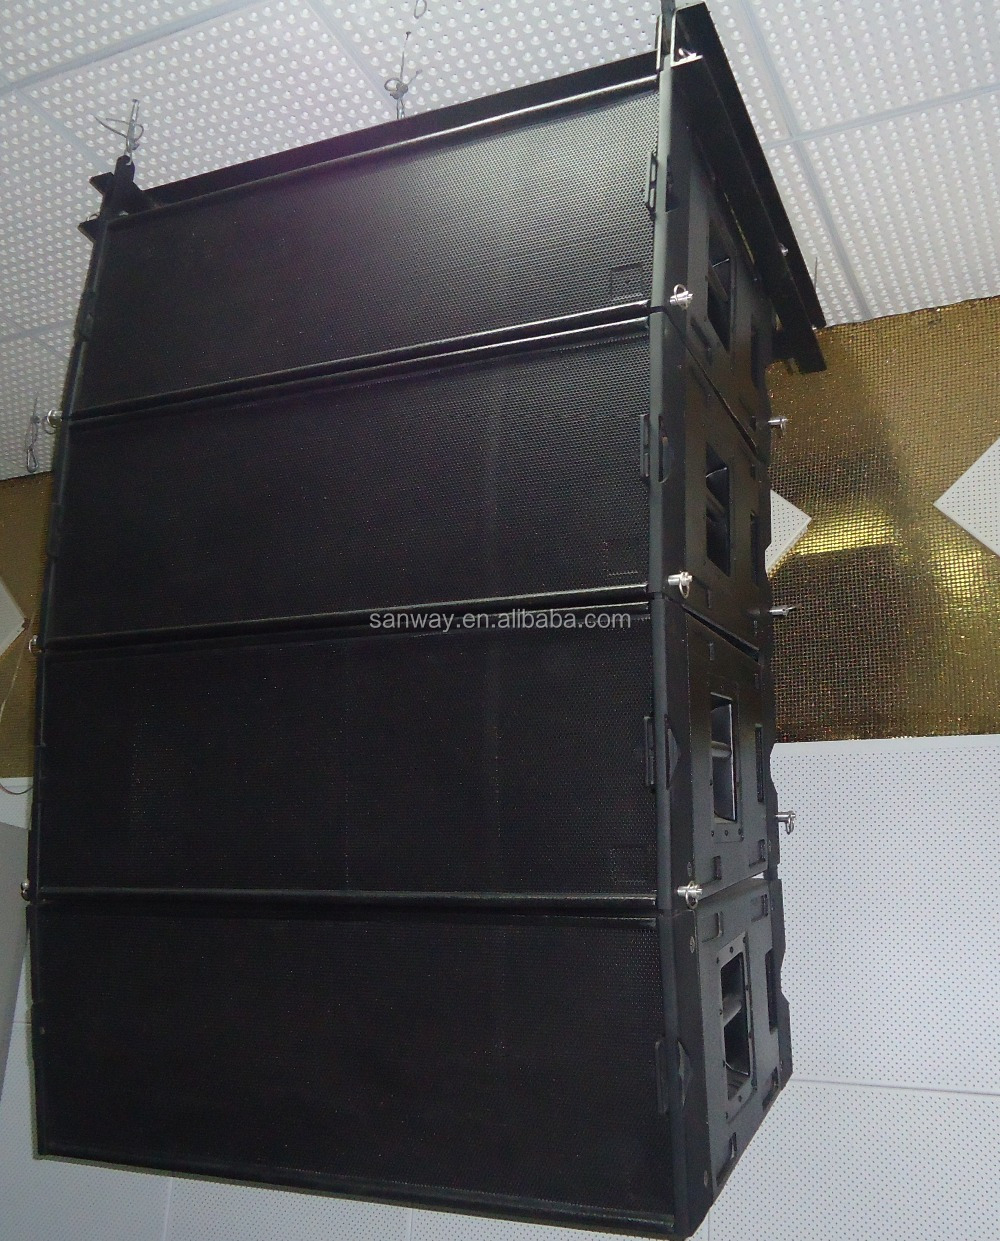 w8lc sanway audio line array speaker stand